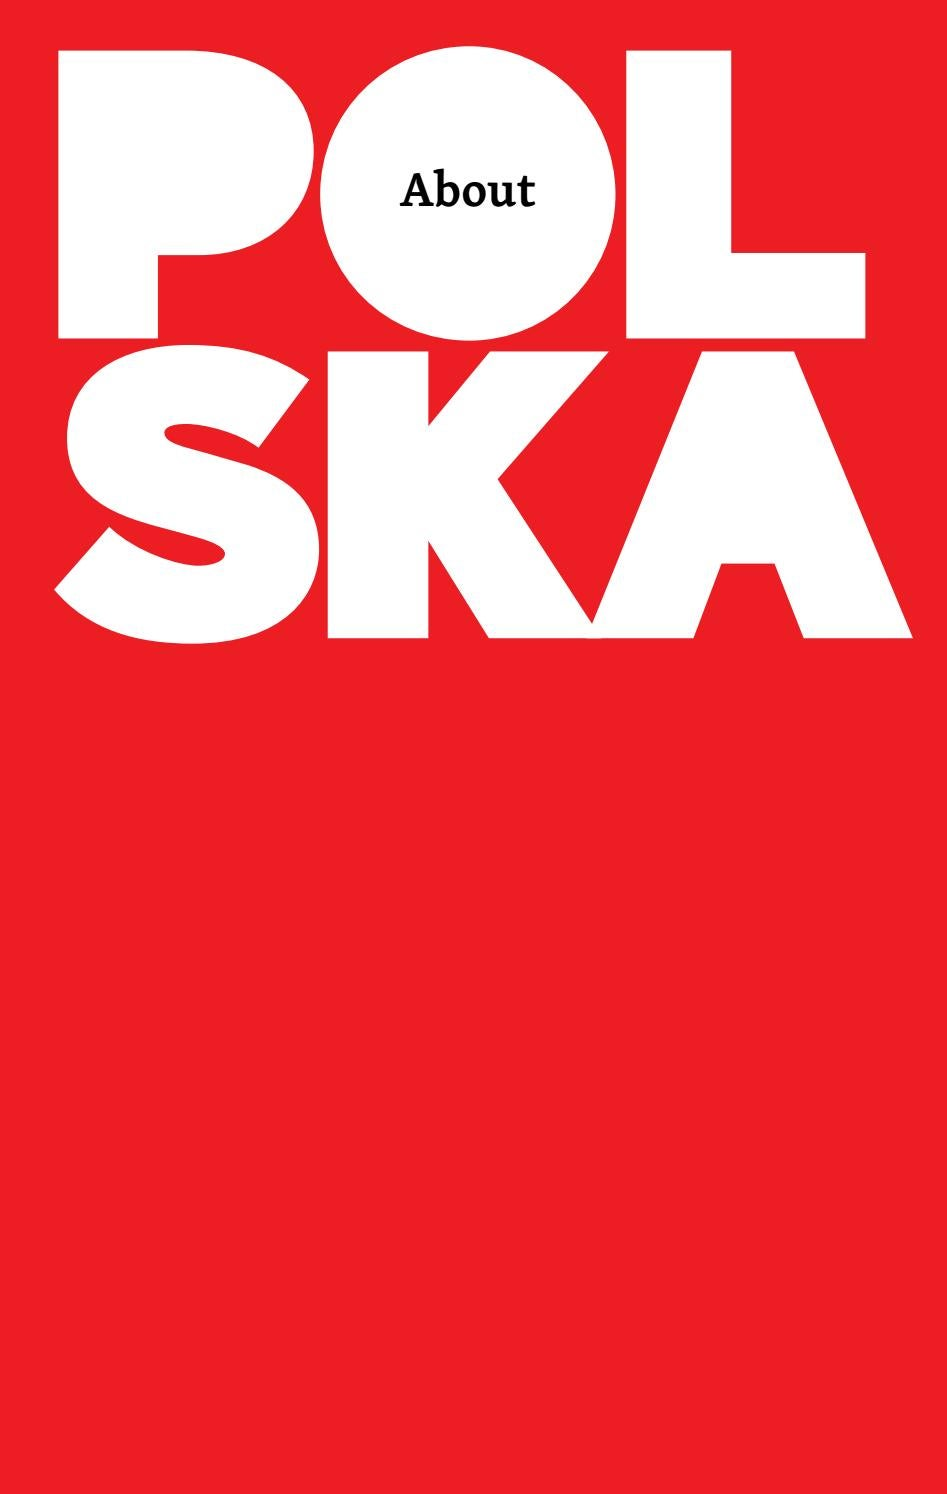 Arte Bella Ska About Polska En By Ministry Of Foreign Affairs Of The Republic Of